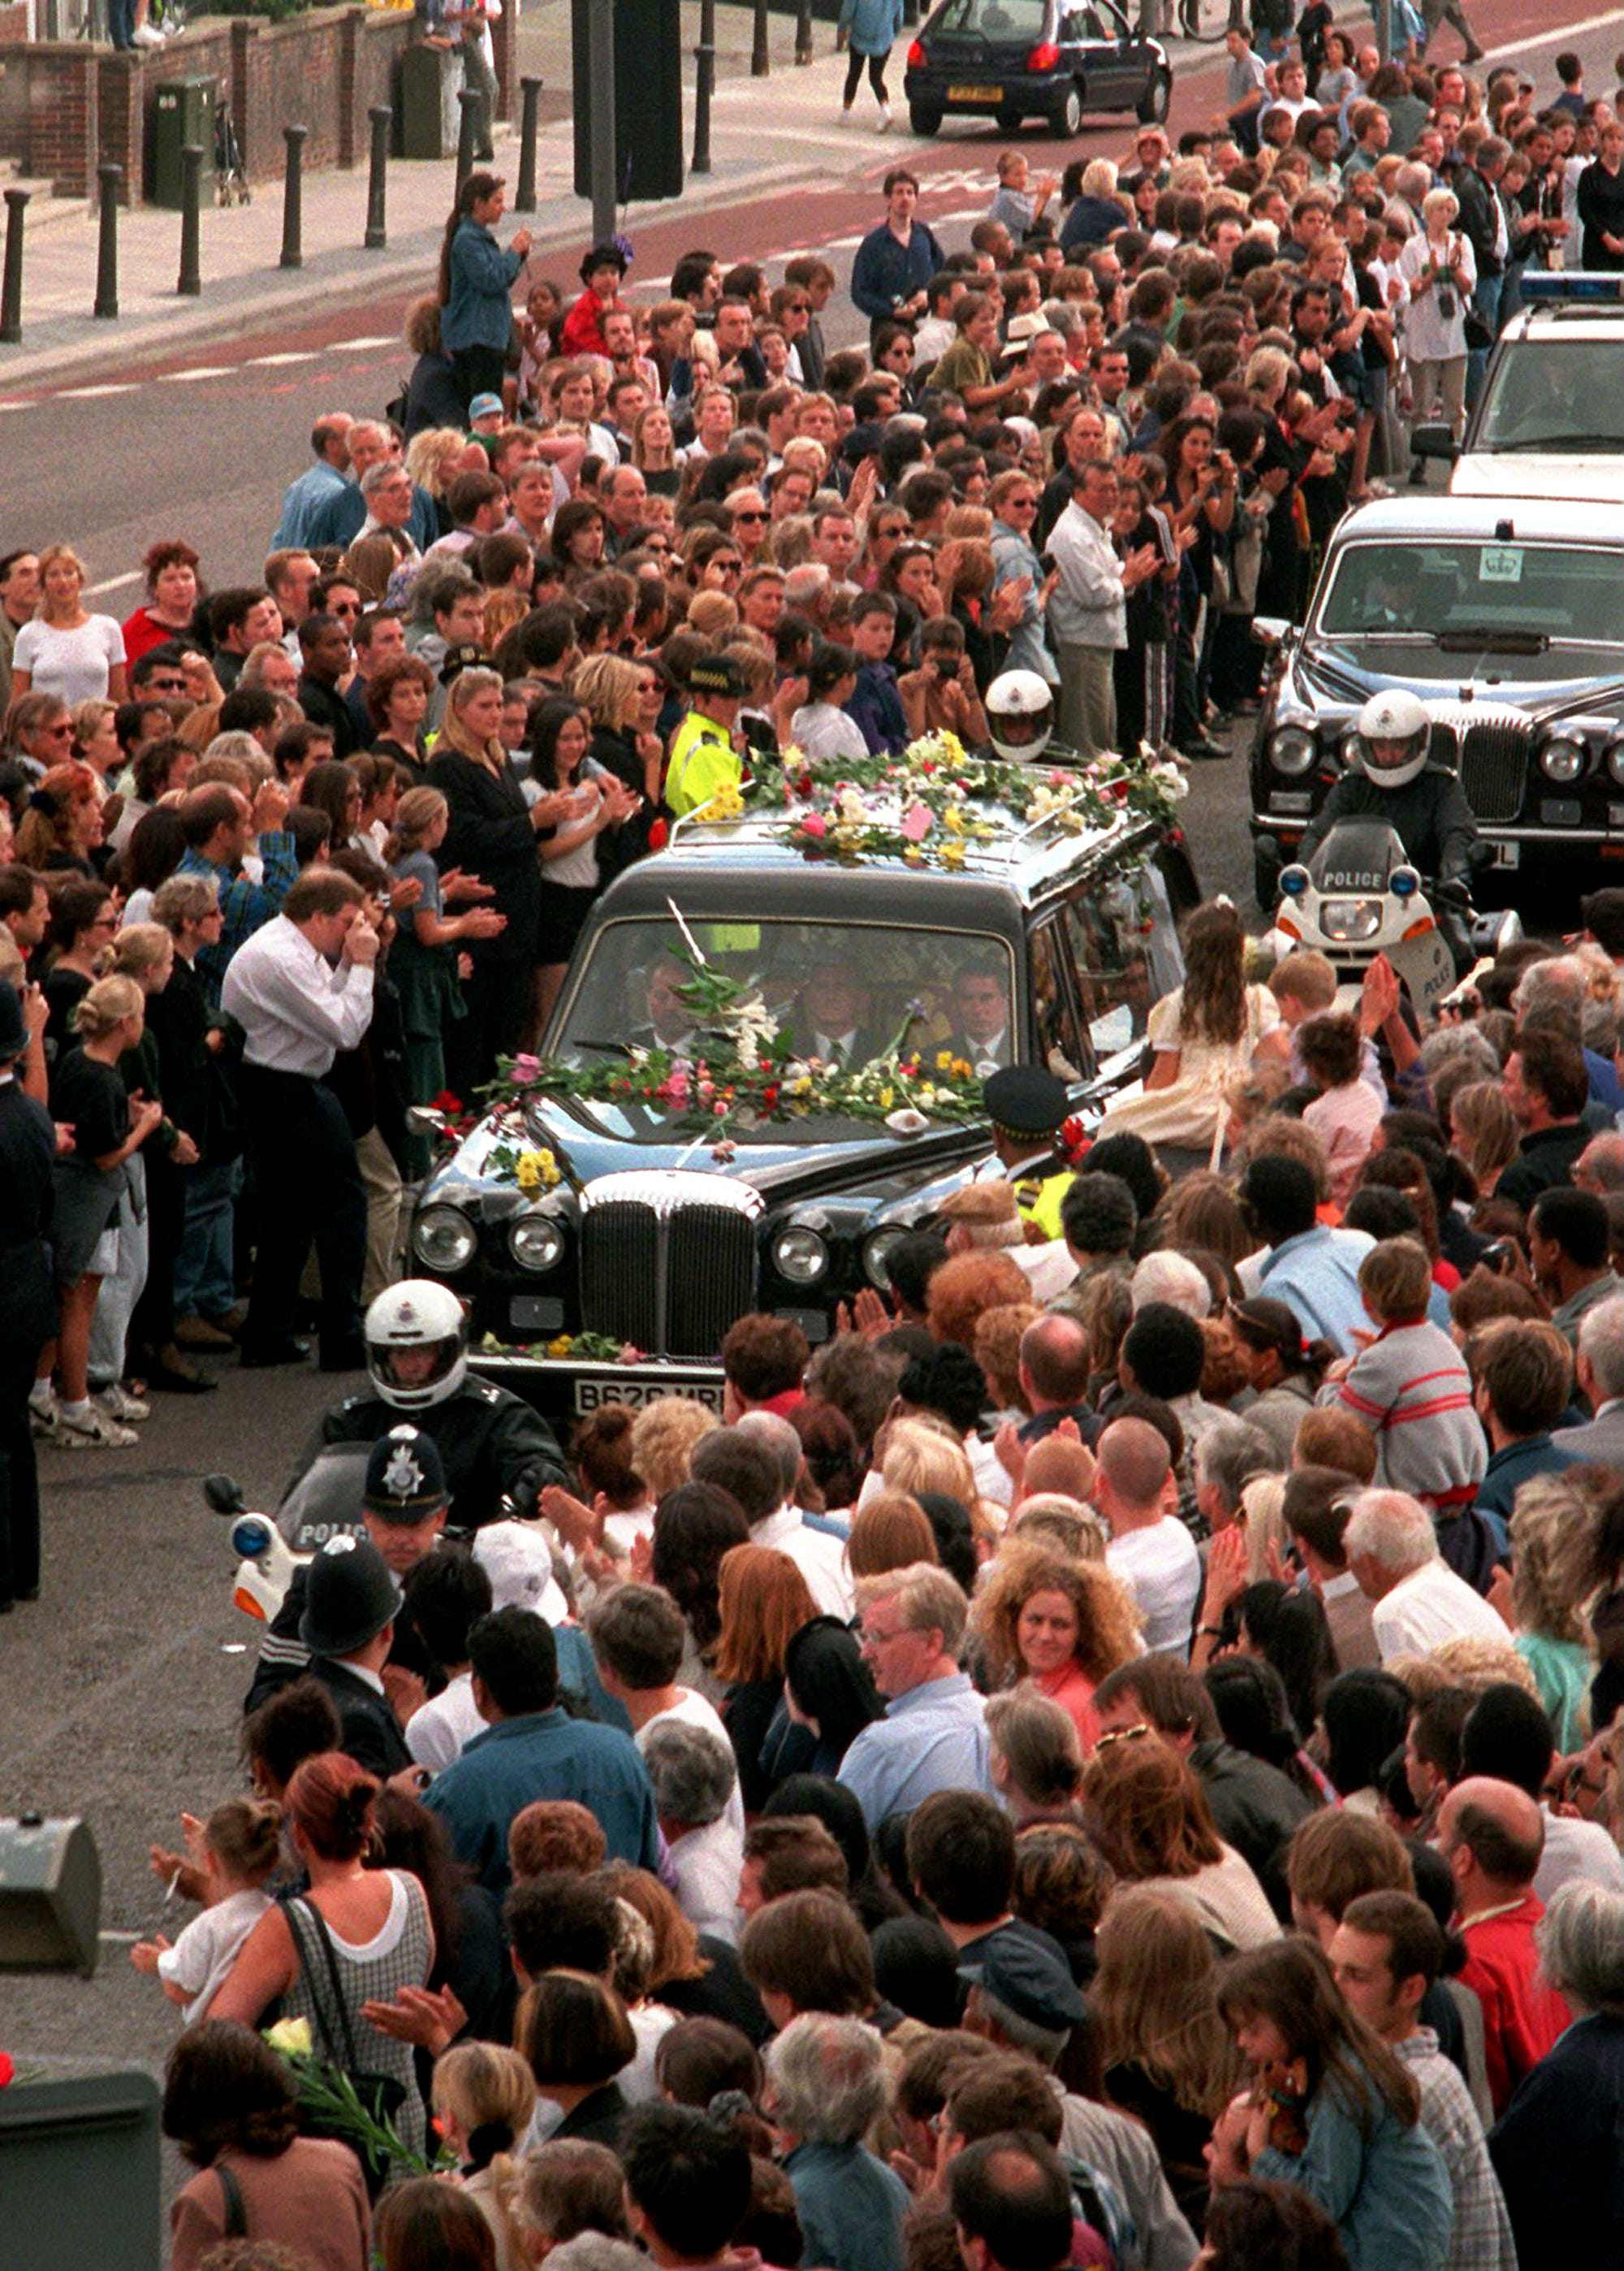 Princess Diana Funeral Anniversary Crowd Procession